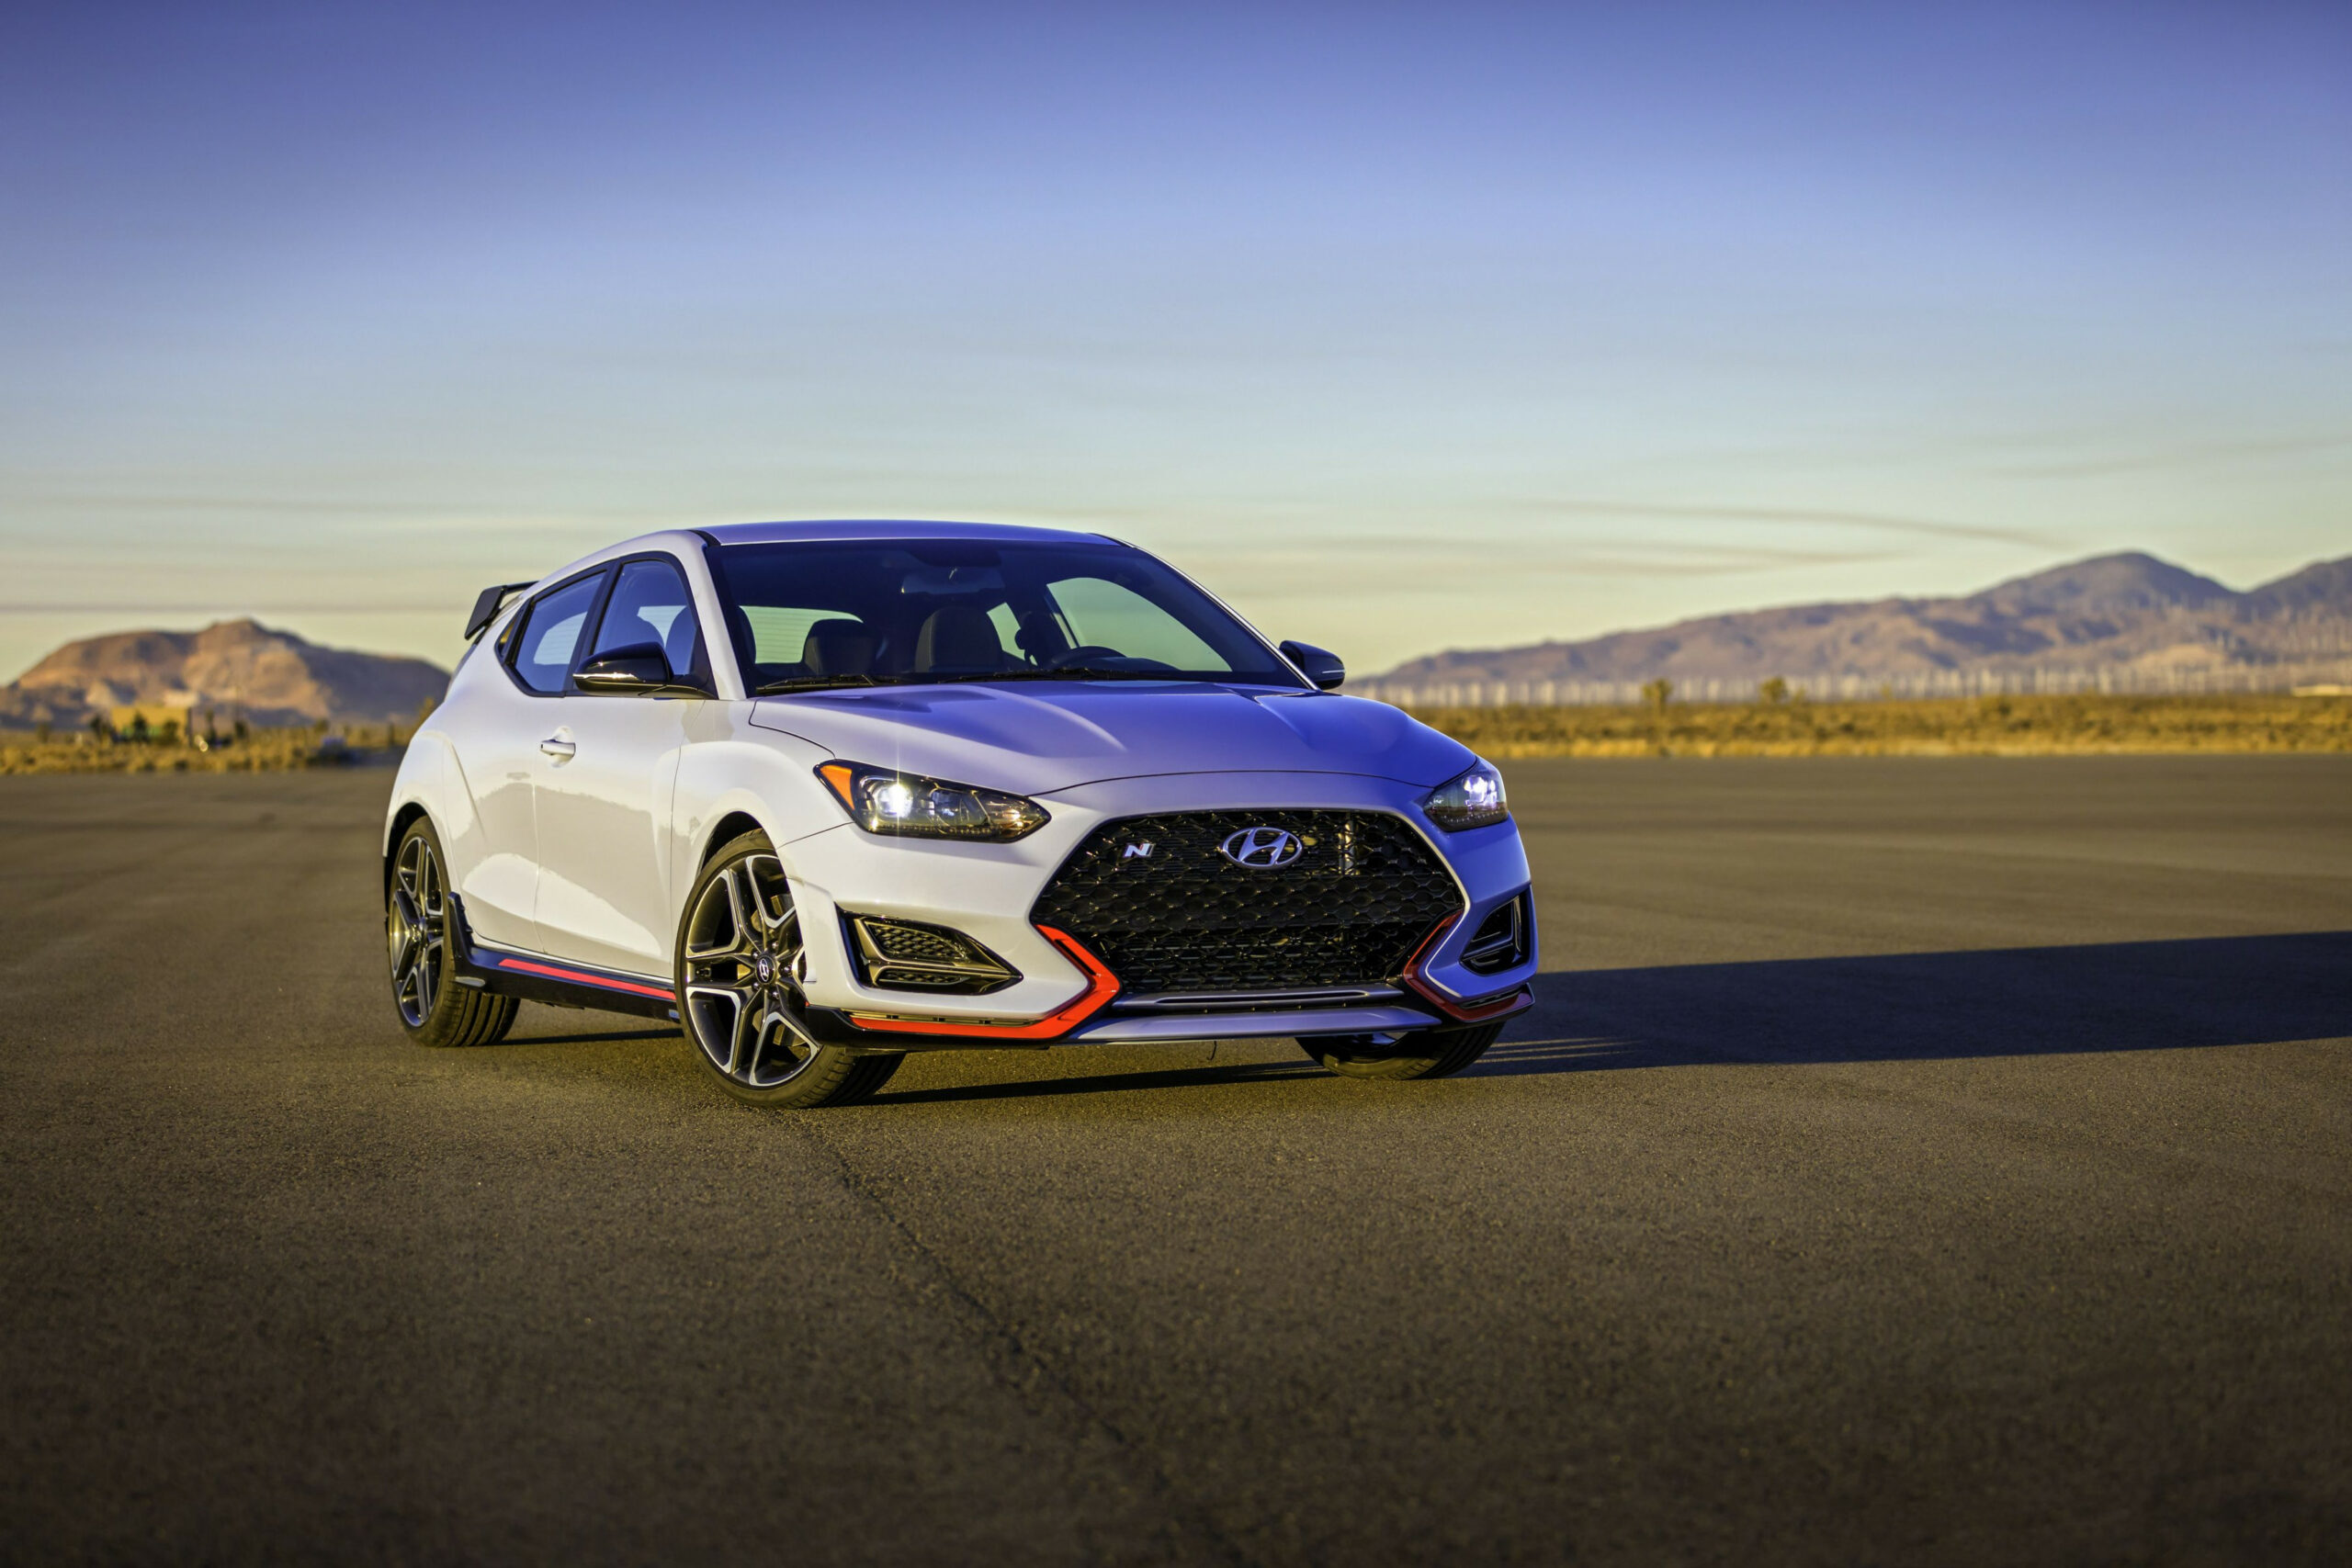 12 Hyundai Veloster N Review, Pricing, and Specs